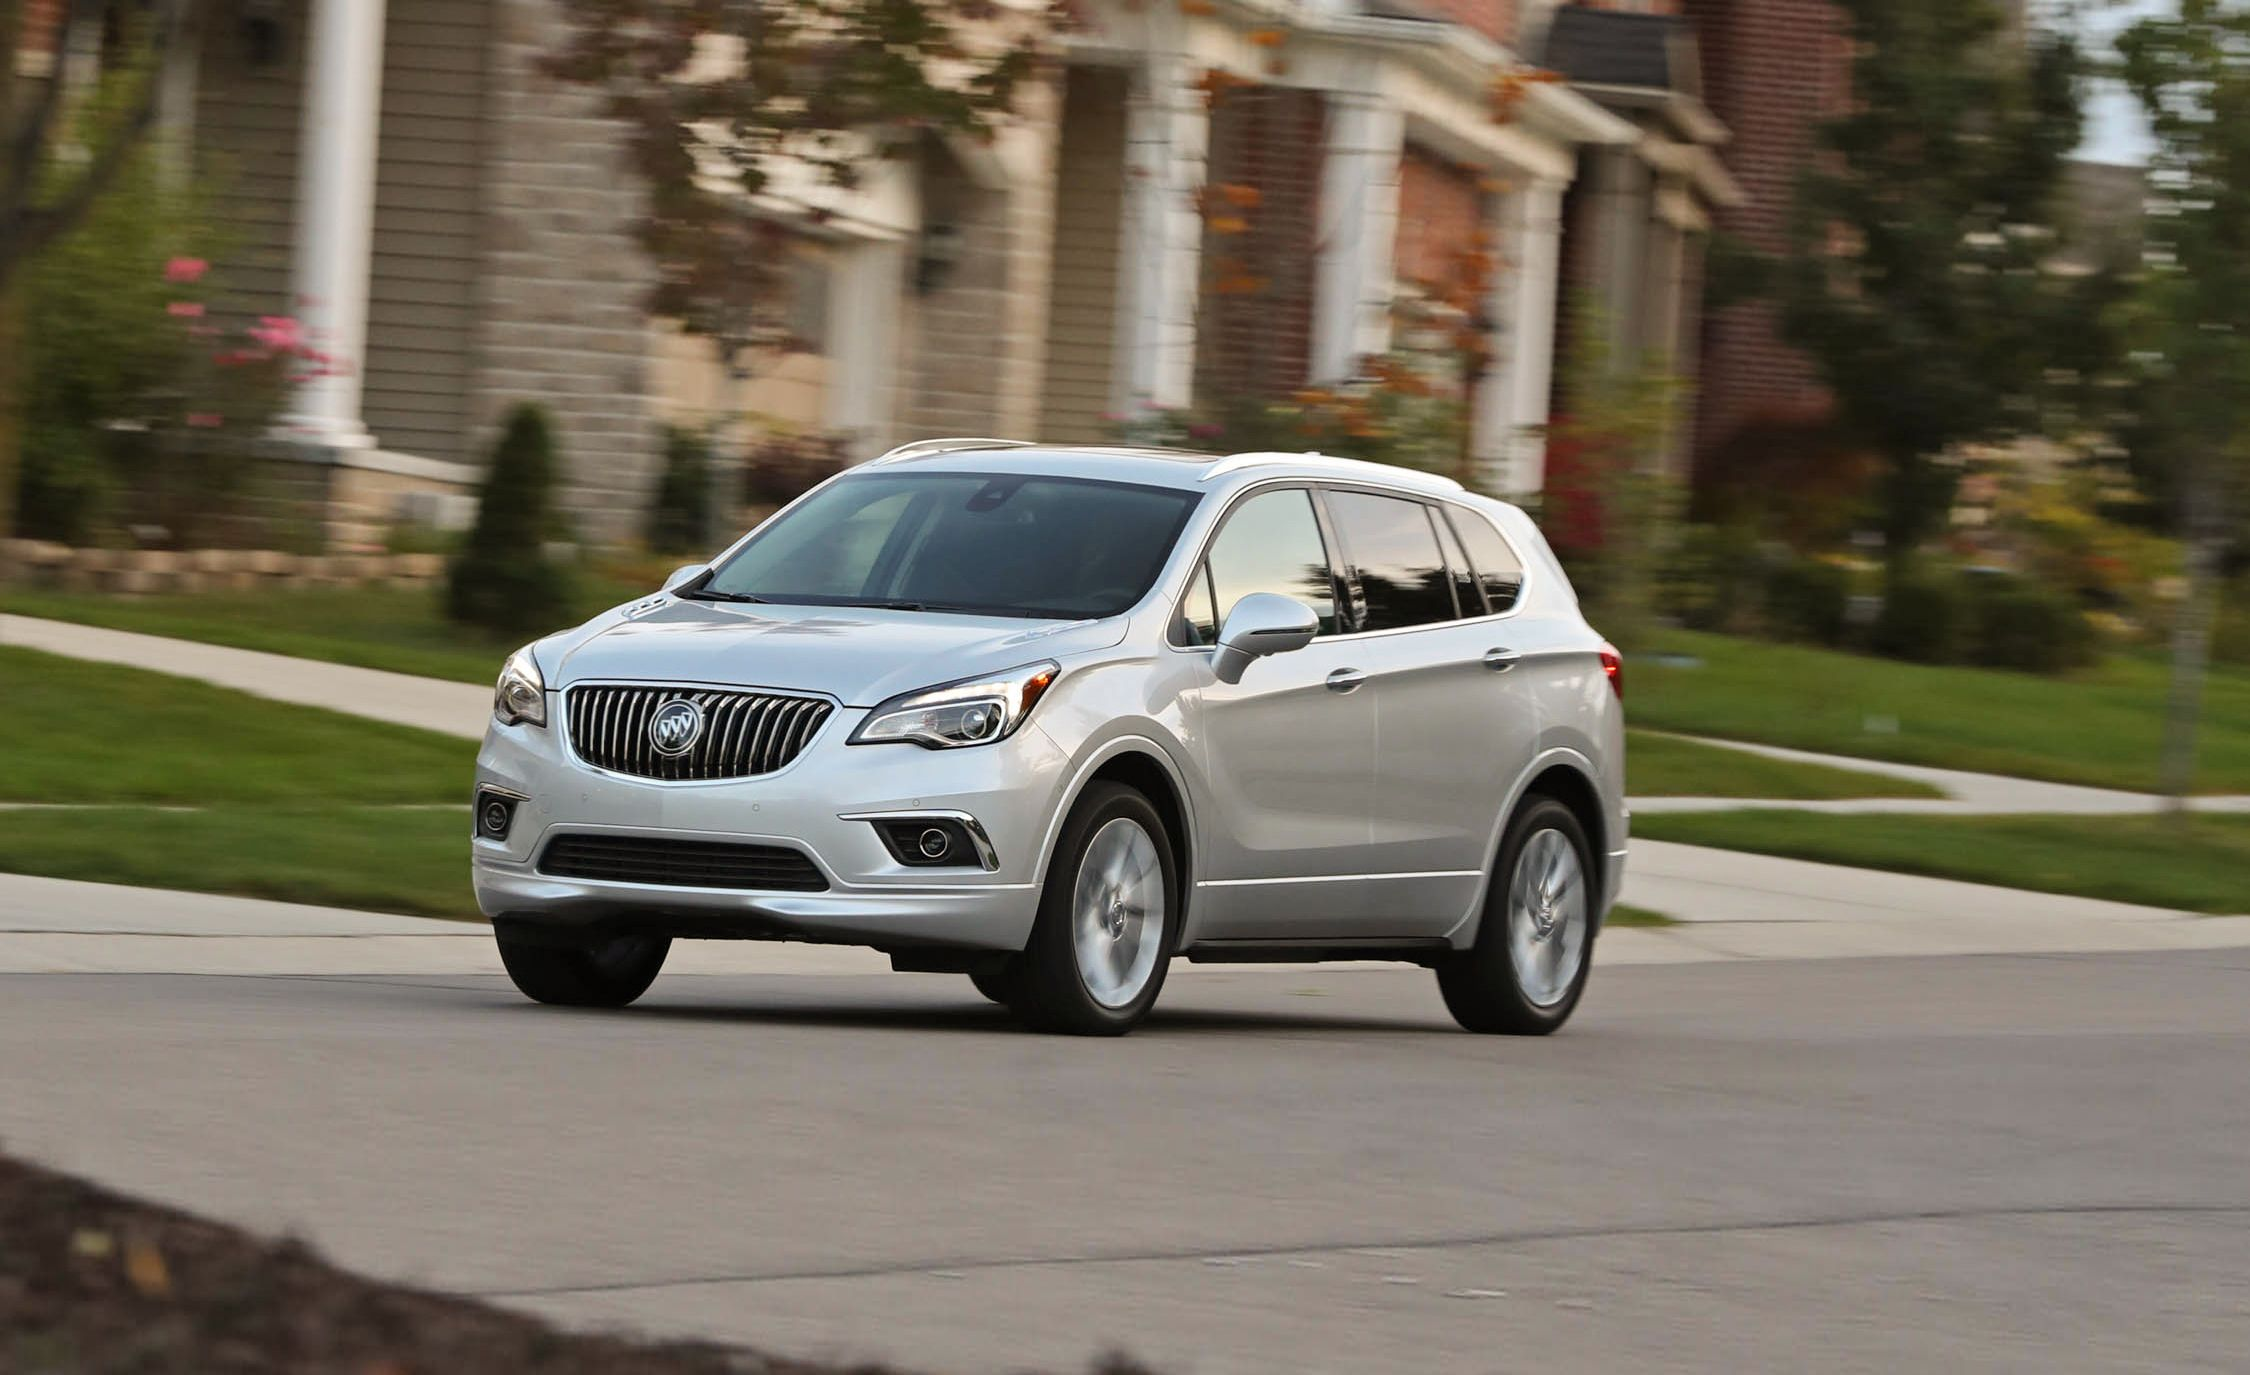 mov suv lease on specials image finance exterior enclave oshawa encore new offers buick current and in